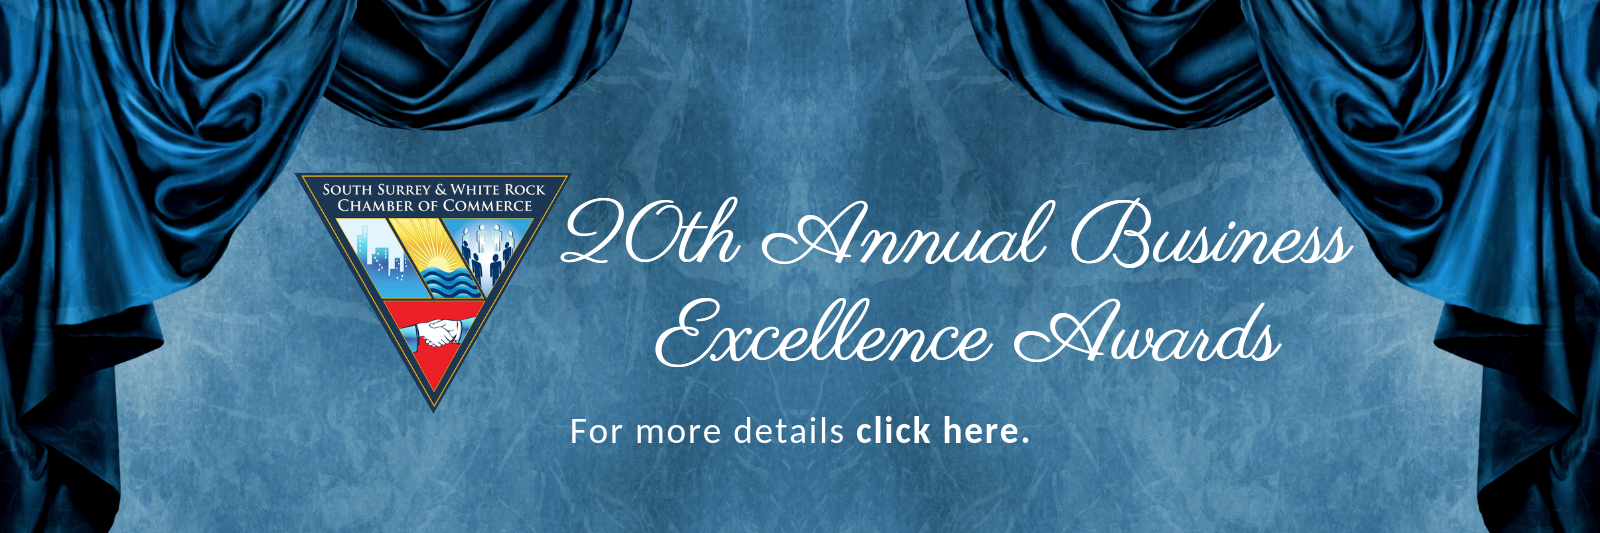 20th-Annual-Business-Excellence-Awards-1600px-x-533px-click.png